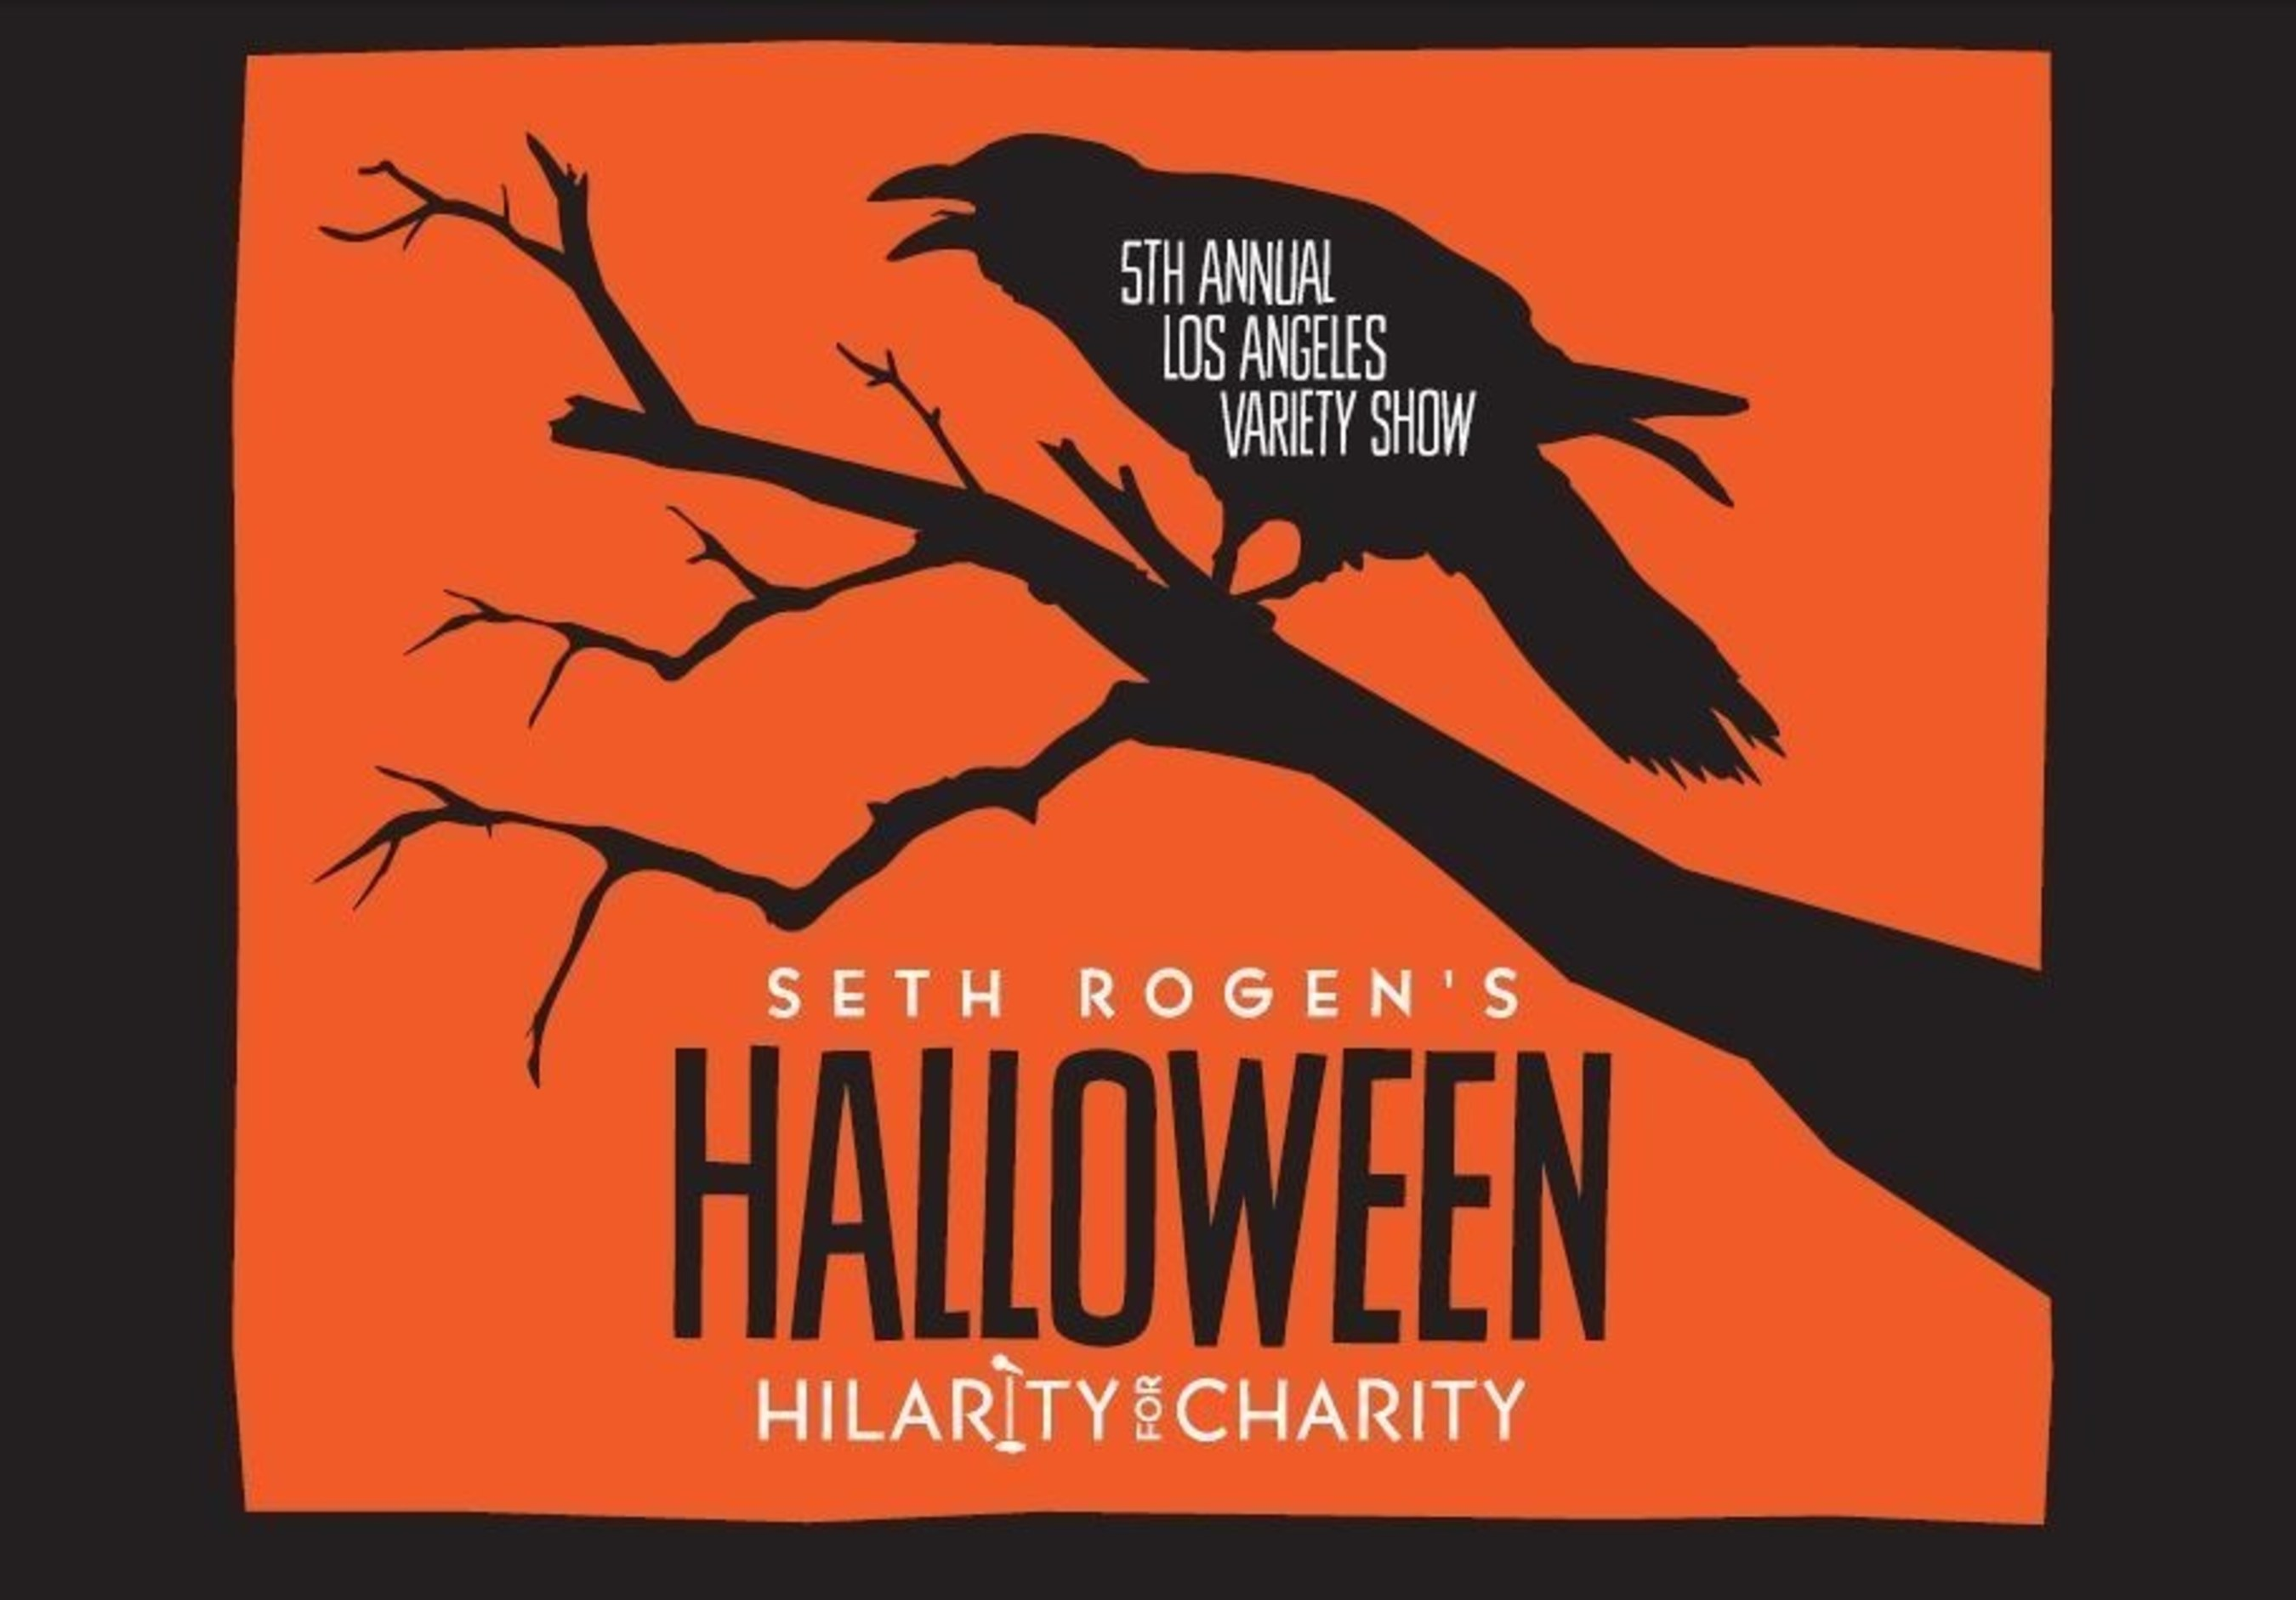 Hilarity for Charity Raises $1.6 Million At 5th Annual Los Angeles Variety Show: Seth Rogen's Halloween